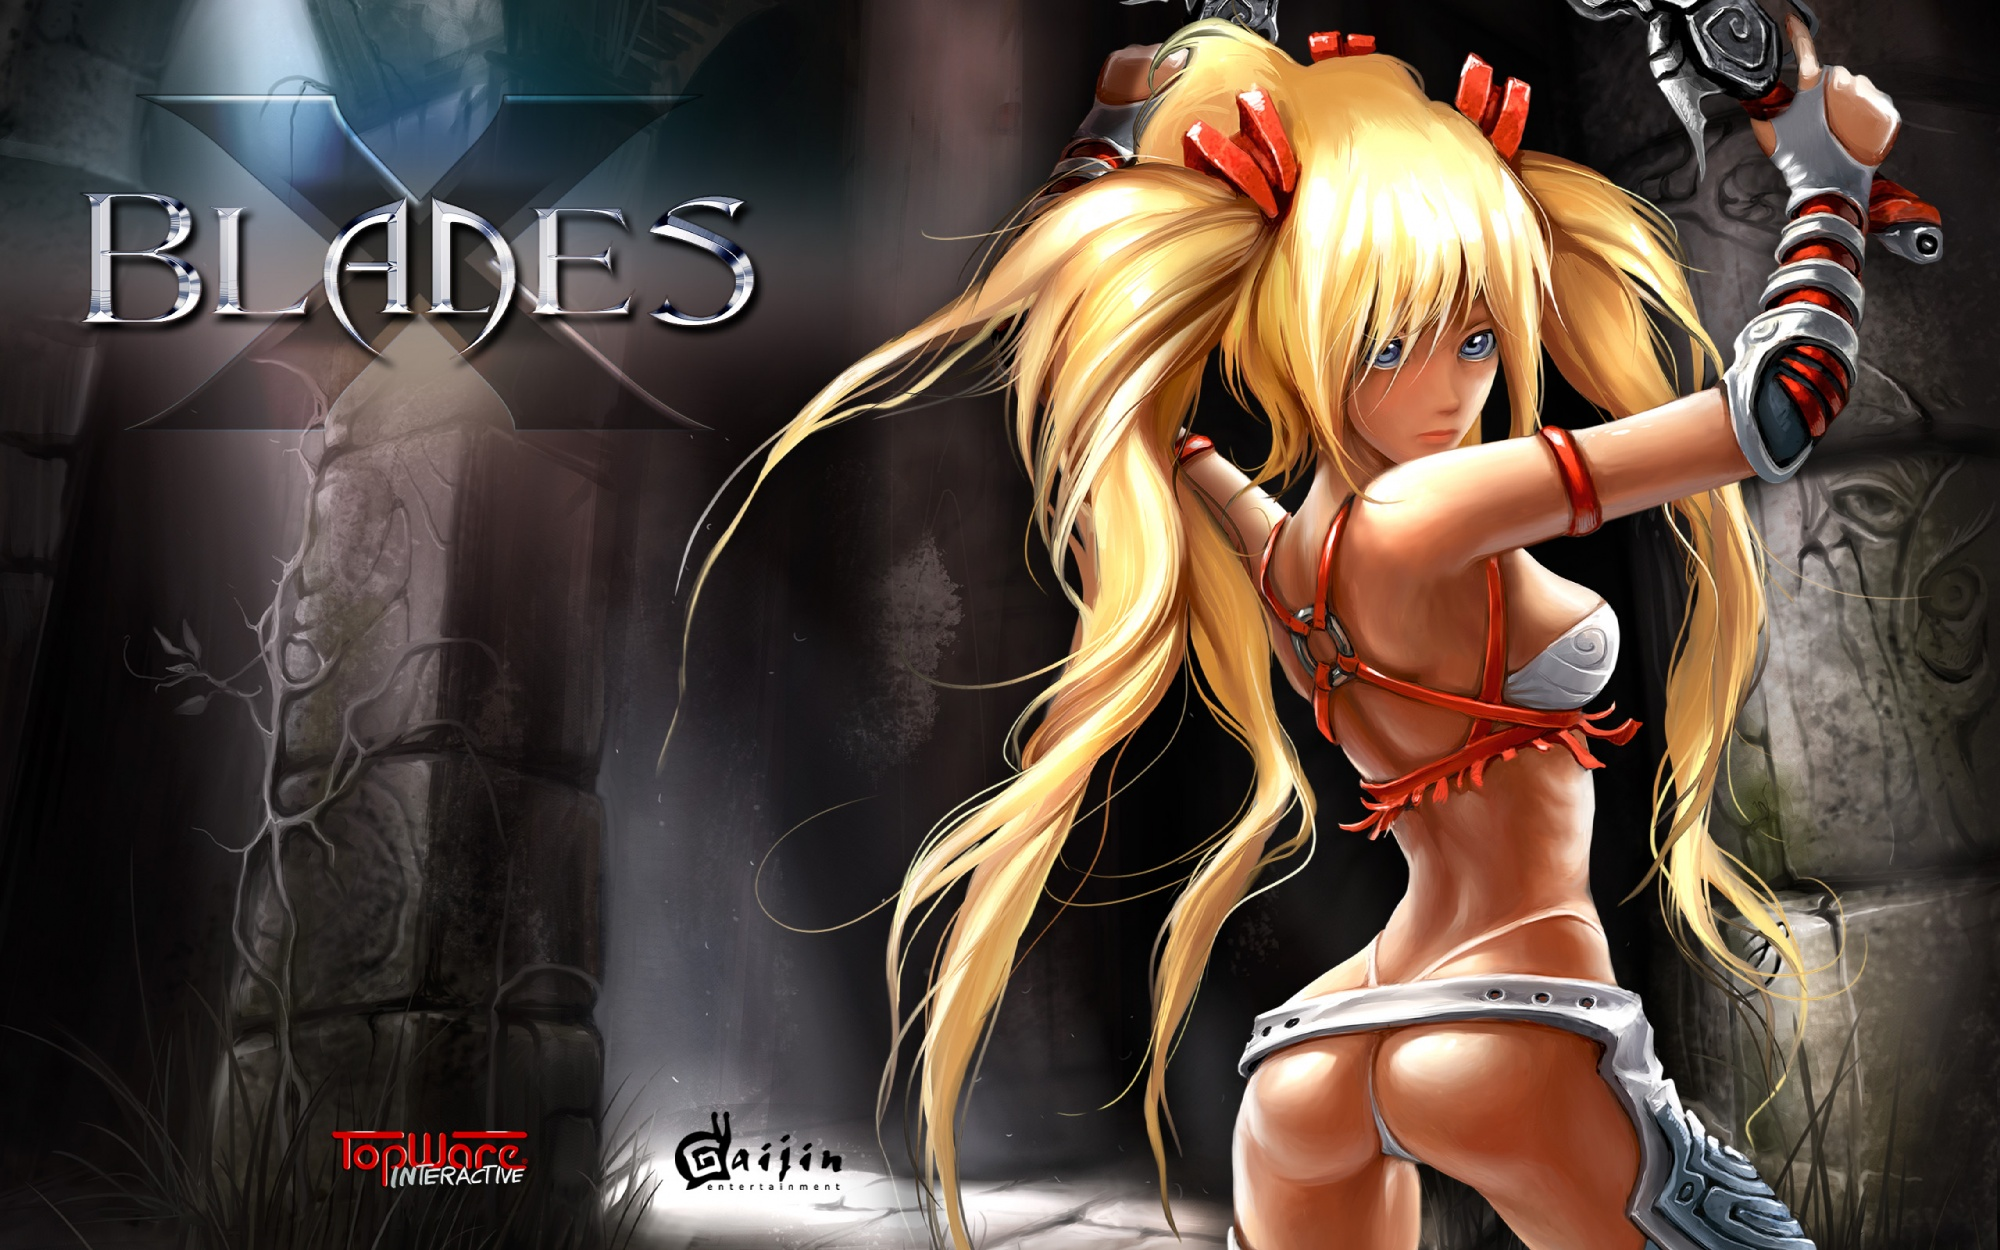 Blades of time nude patch hardcore image